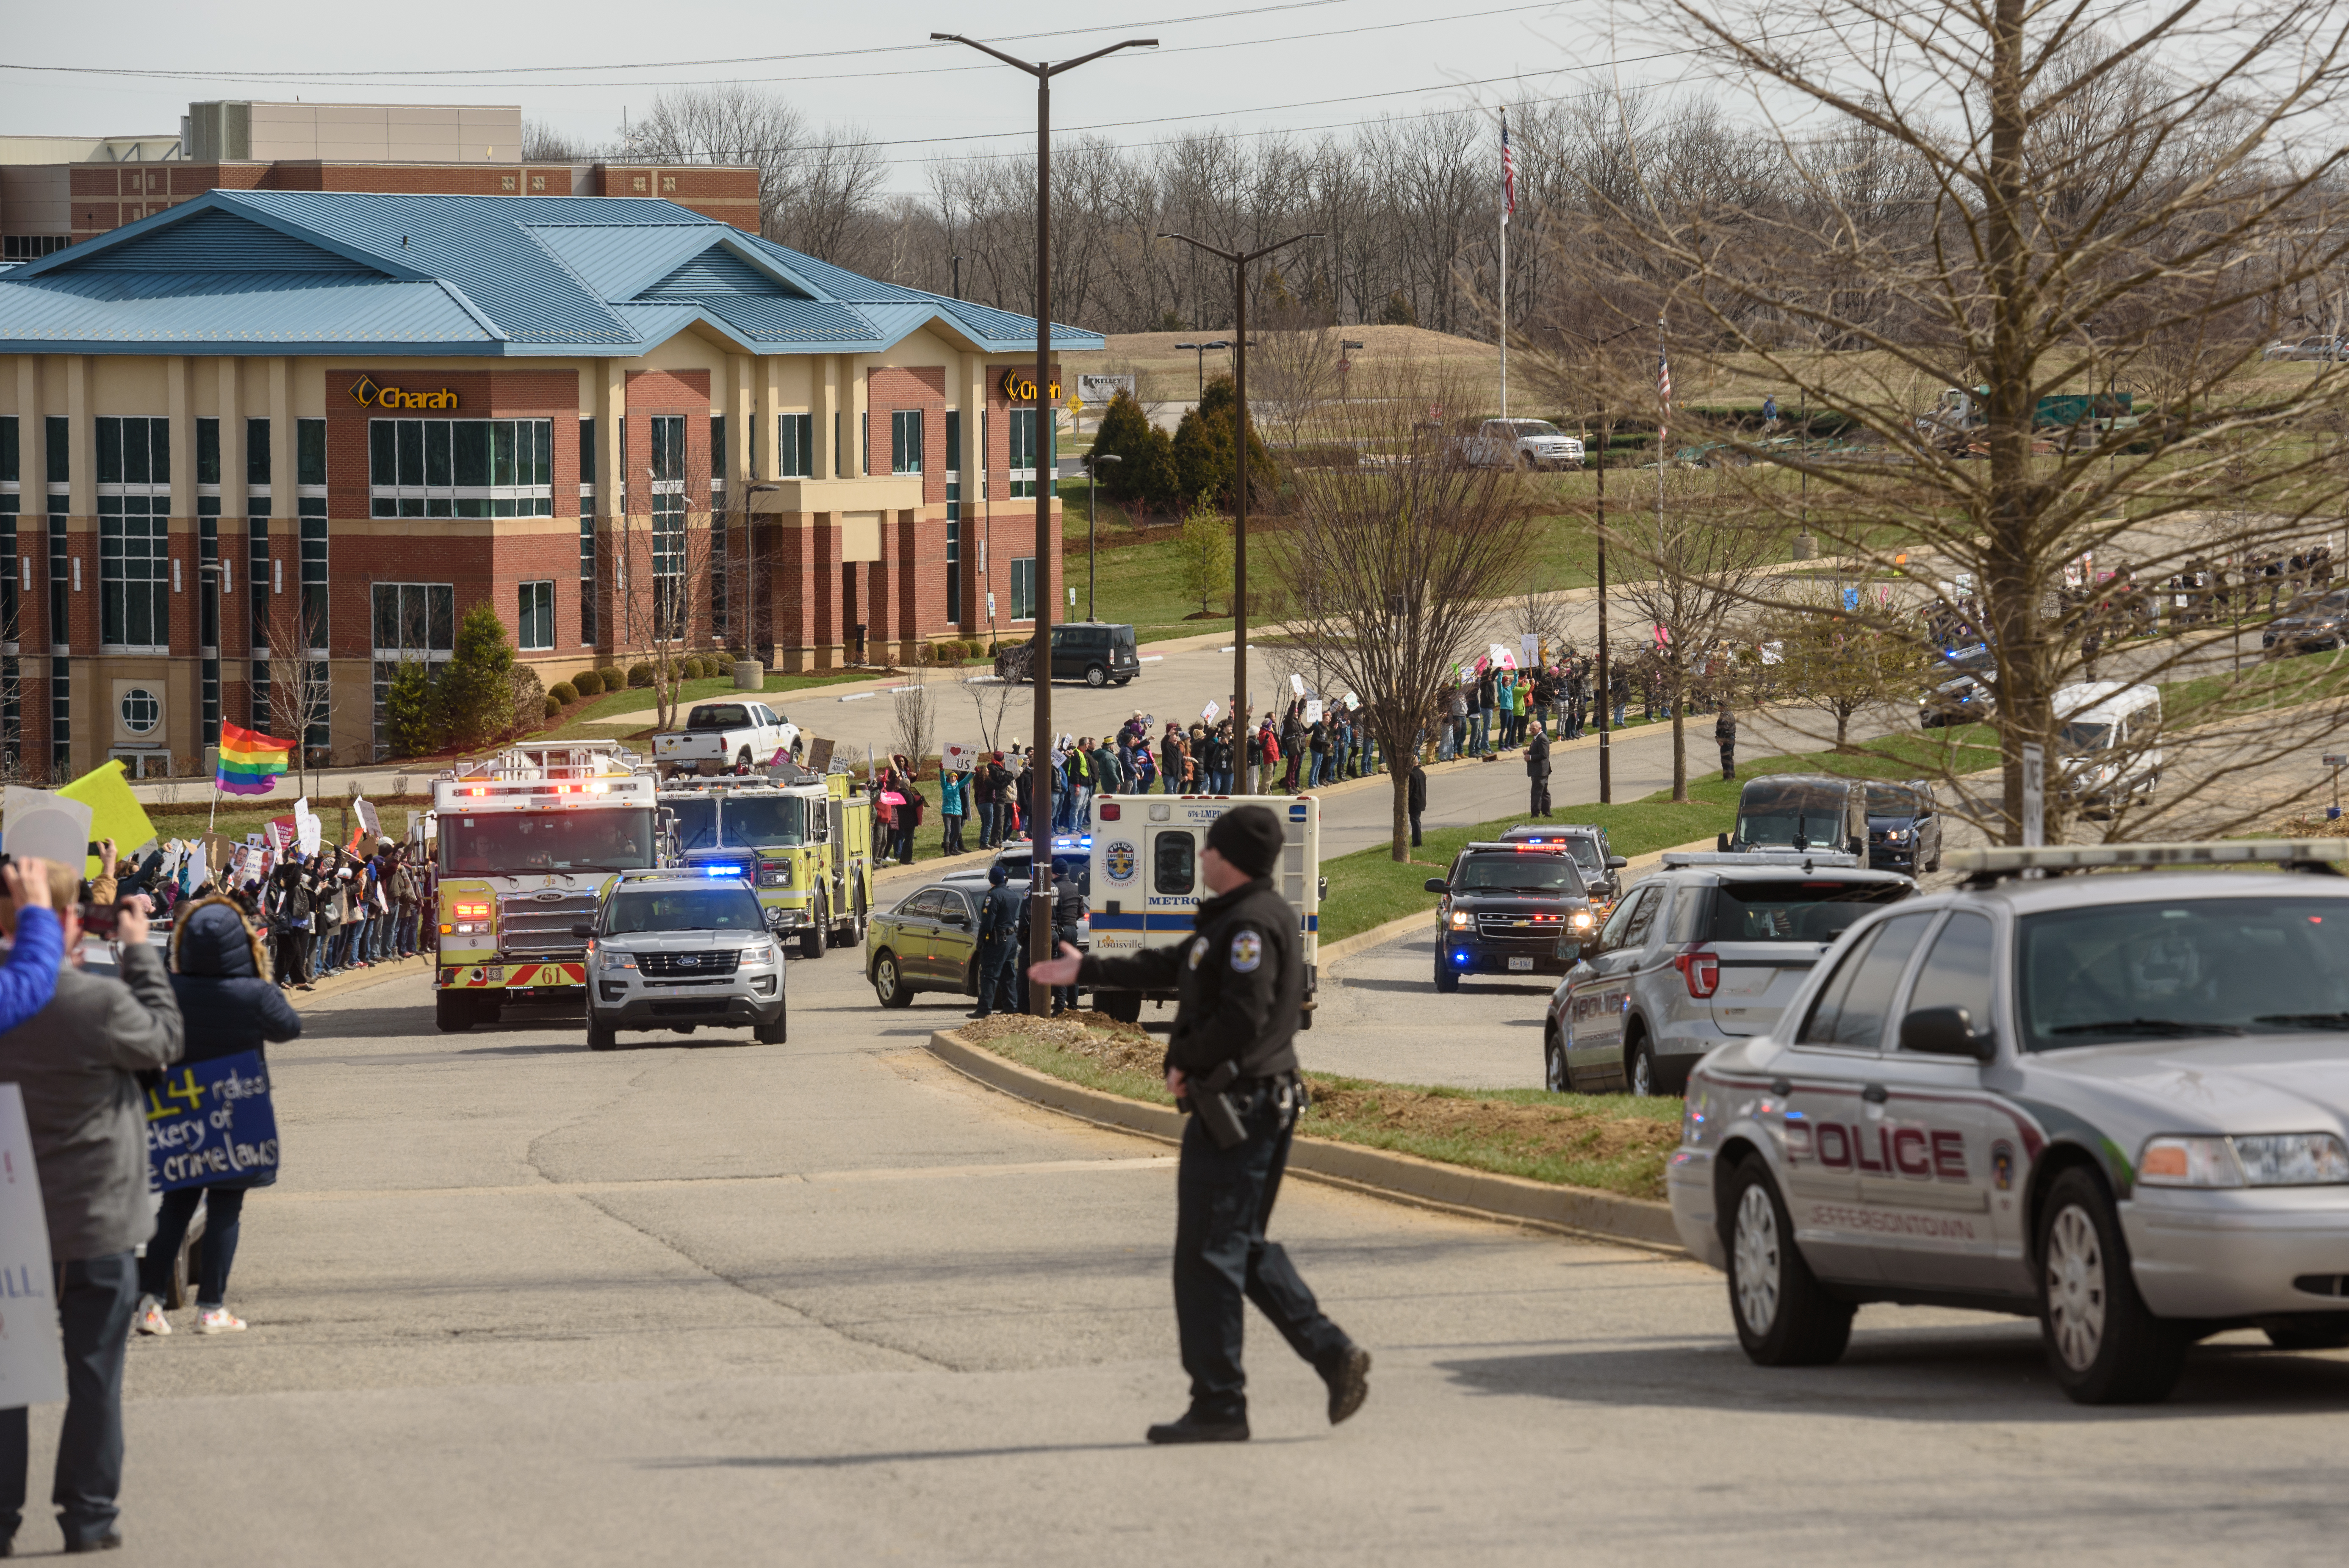 Two Jeffersontown Fire Department trucks, left, drive in front of protesters to block Vice President Pence's view as his entourage leaves the event Saturday.